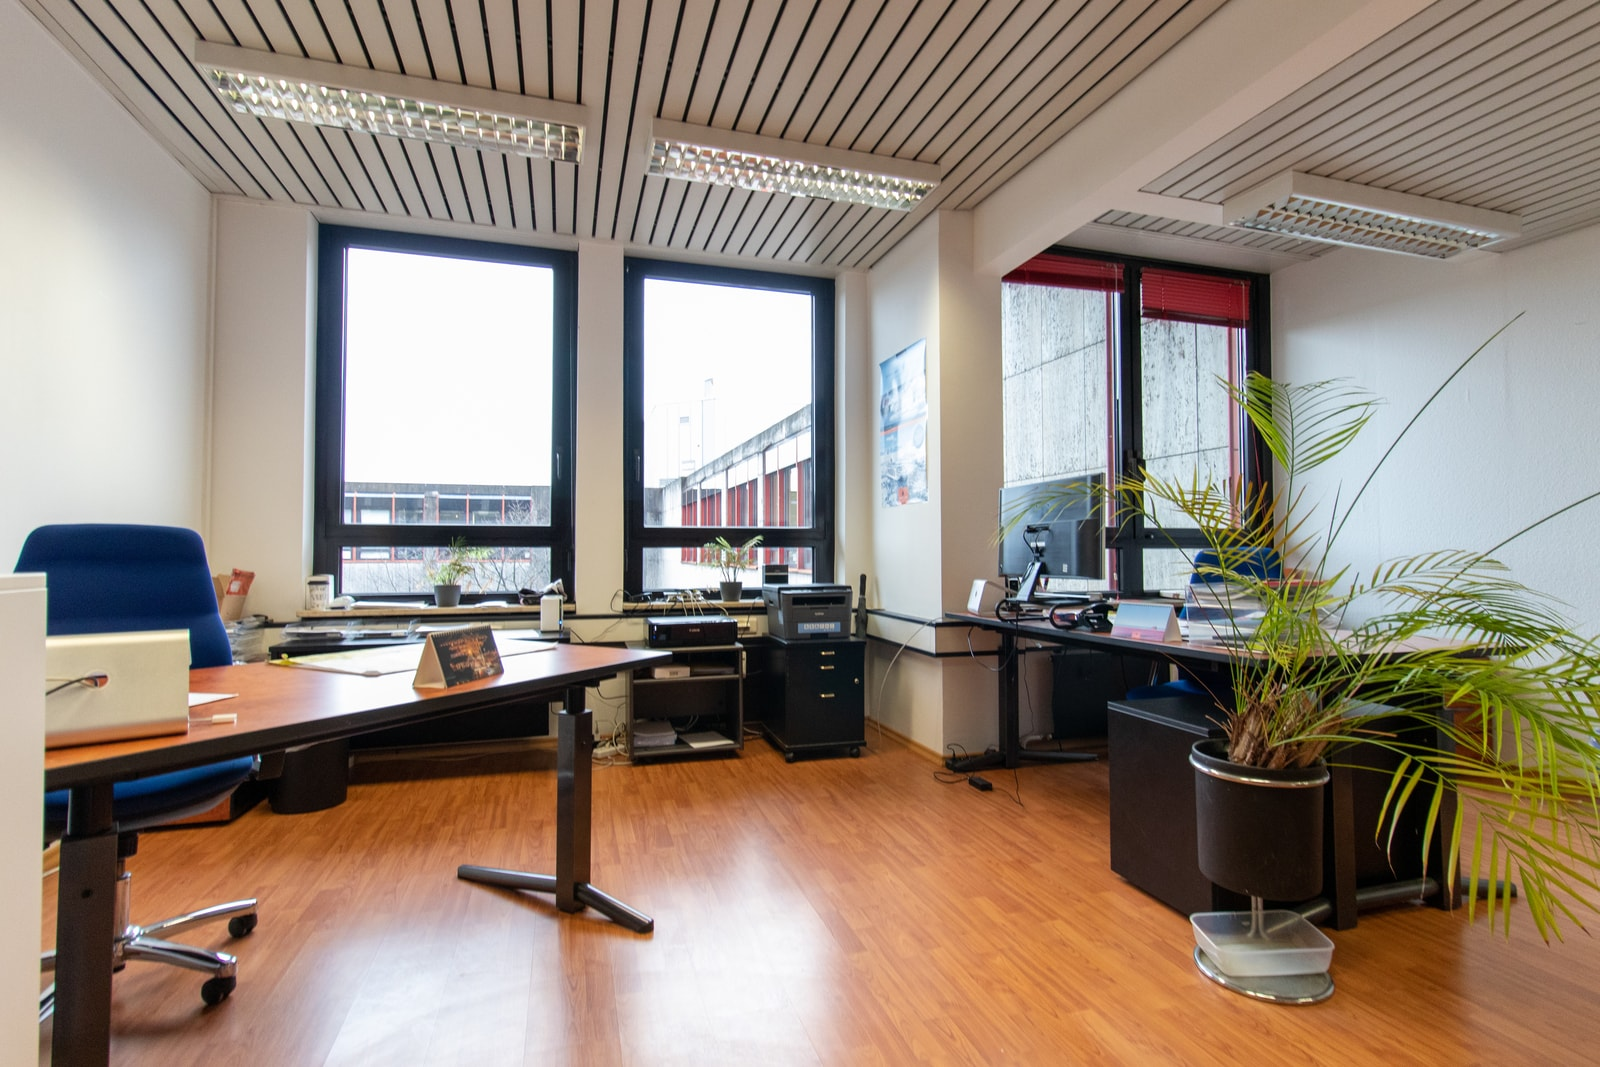 All of the offices are fully furnished